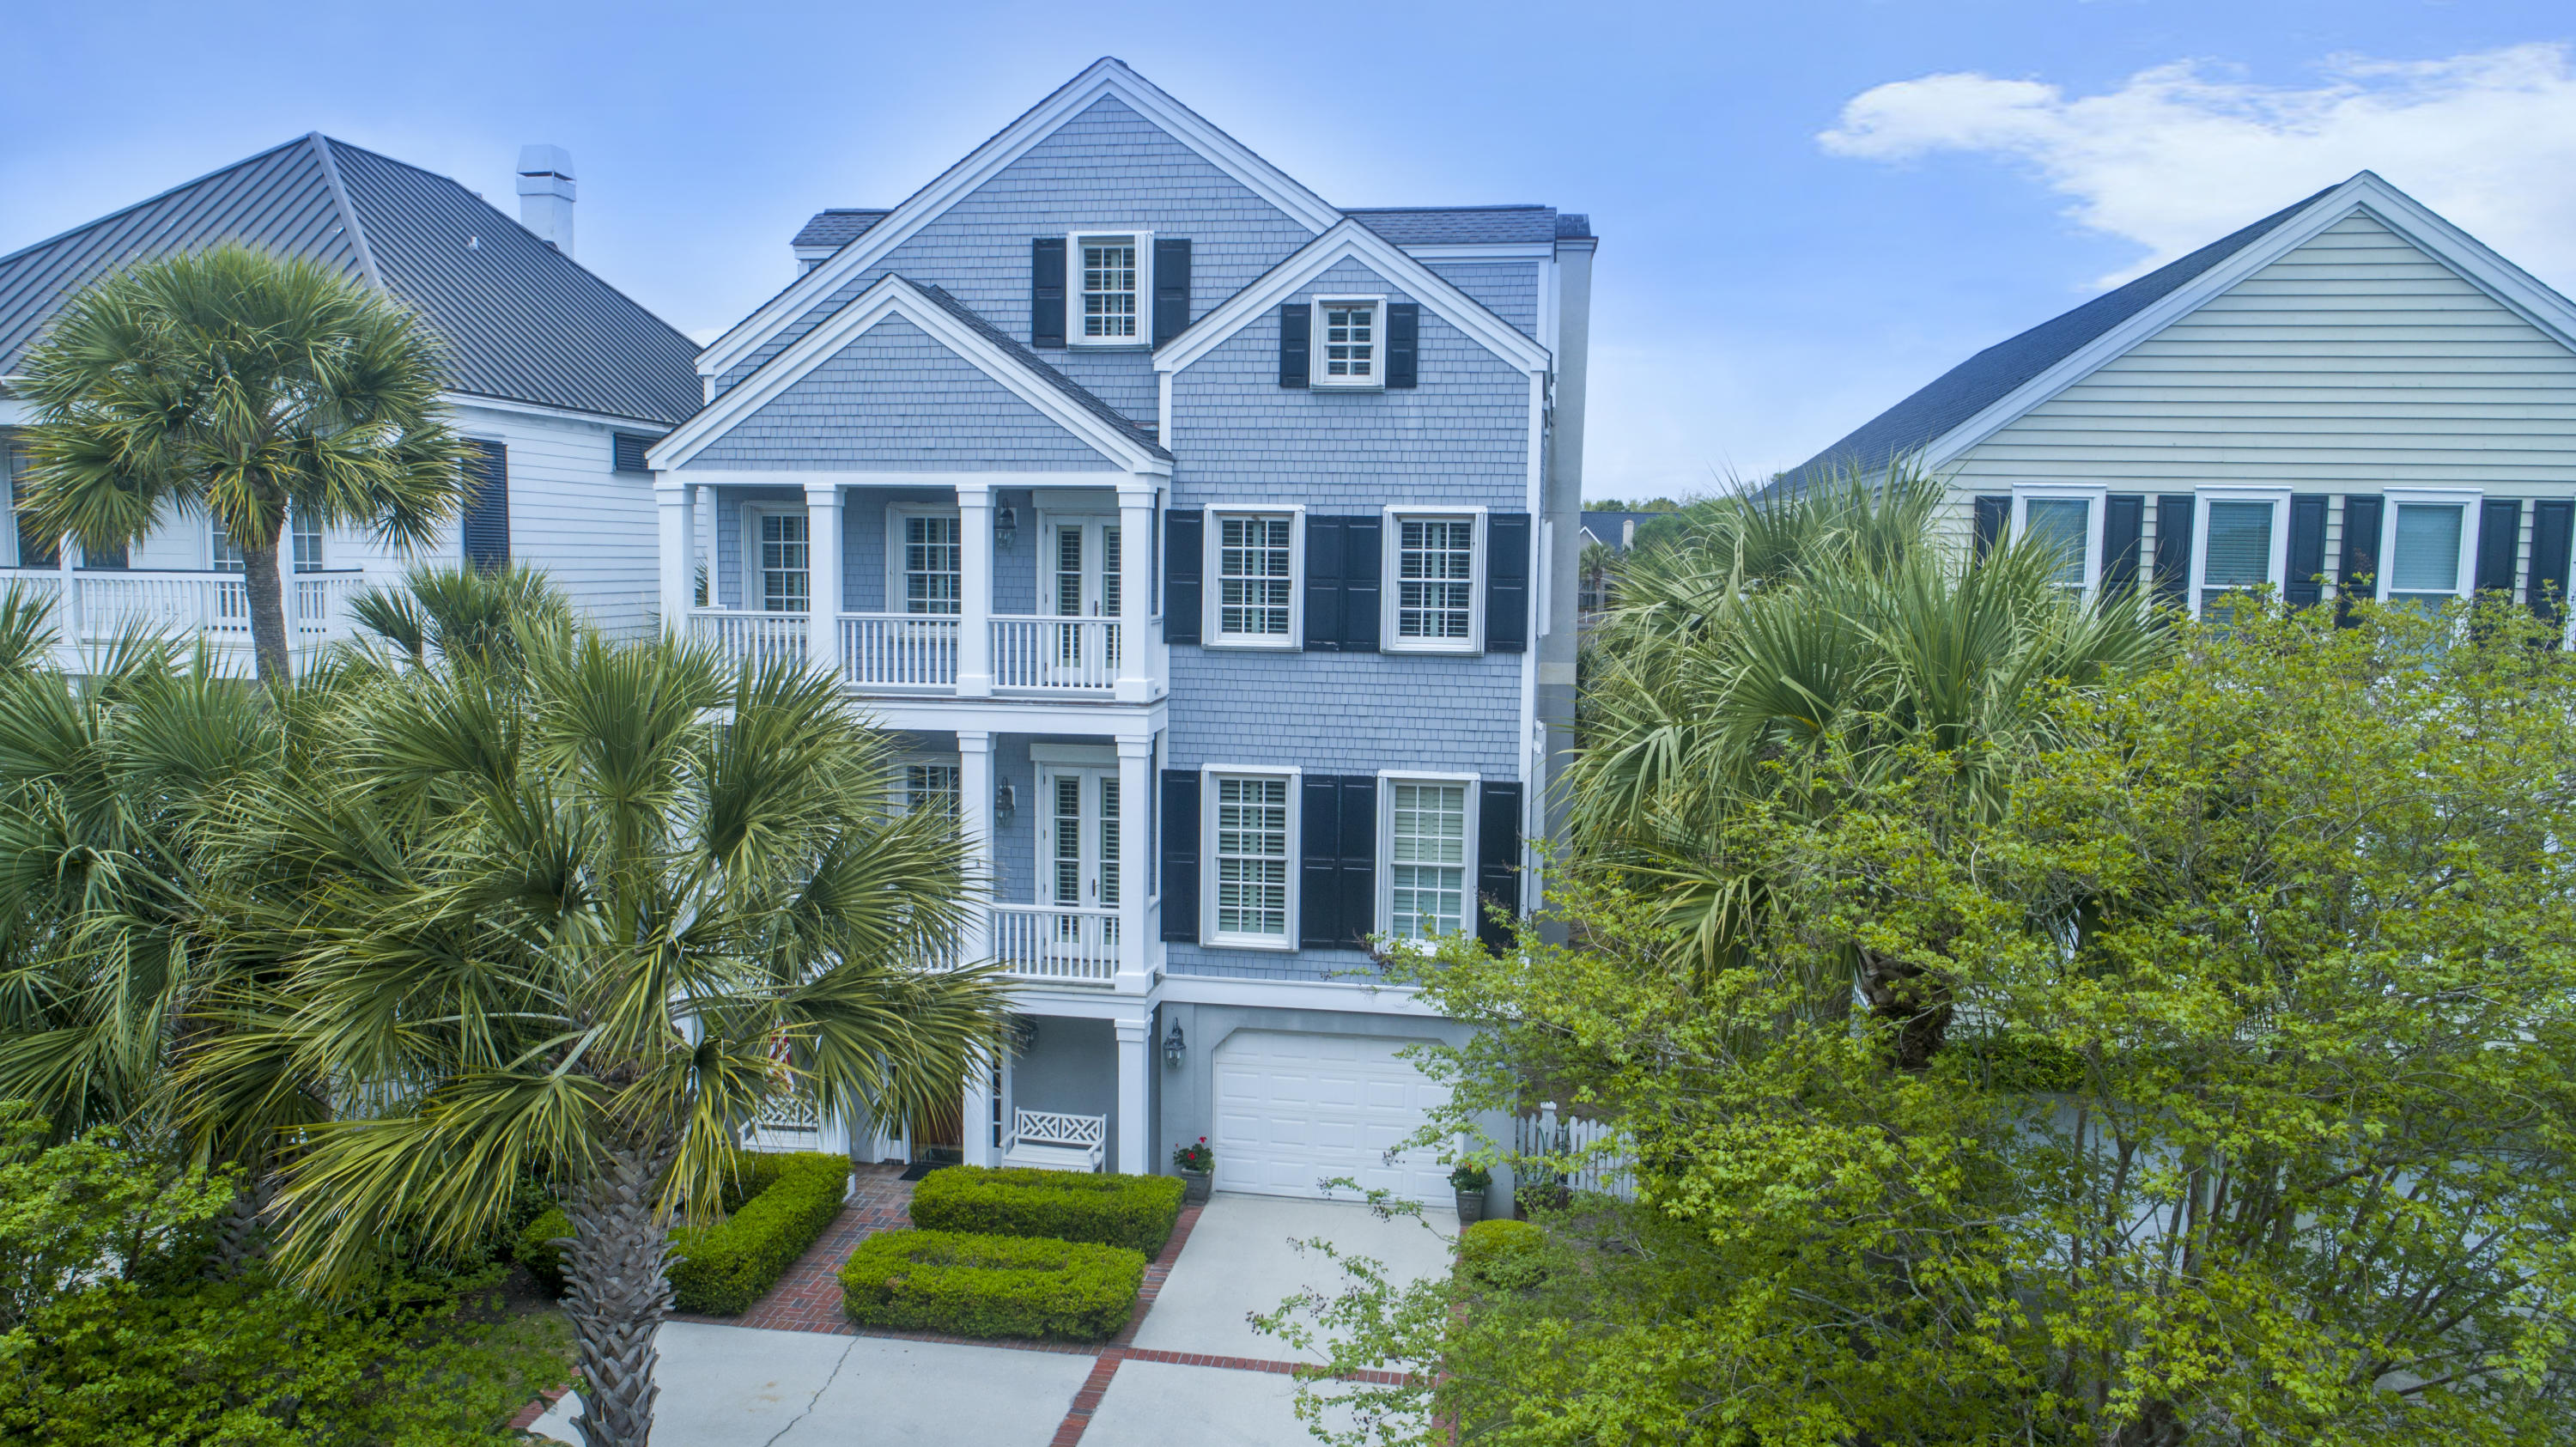 Wild Dunes Homes For Sale - 46 Morgan Place, Isle of Palms, SC - 12